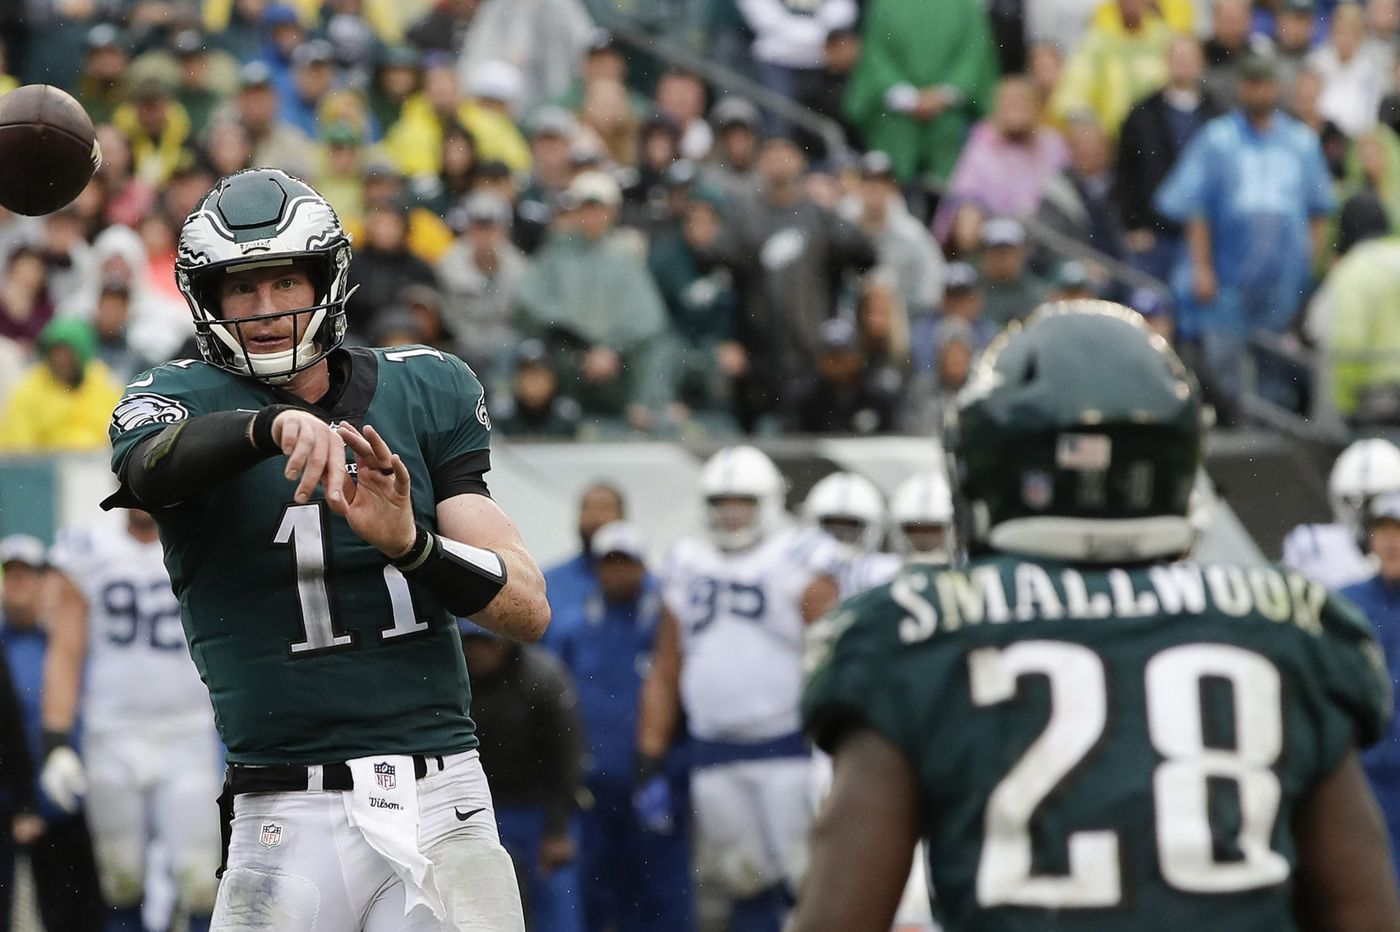 Eagles-Panthers: Making sense of Carson Wentz and other pregame stats that matter | Paul Domowitch